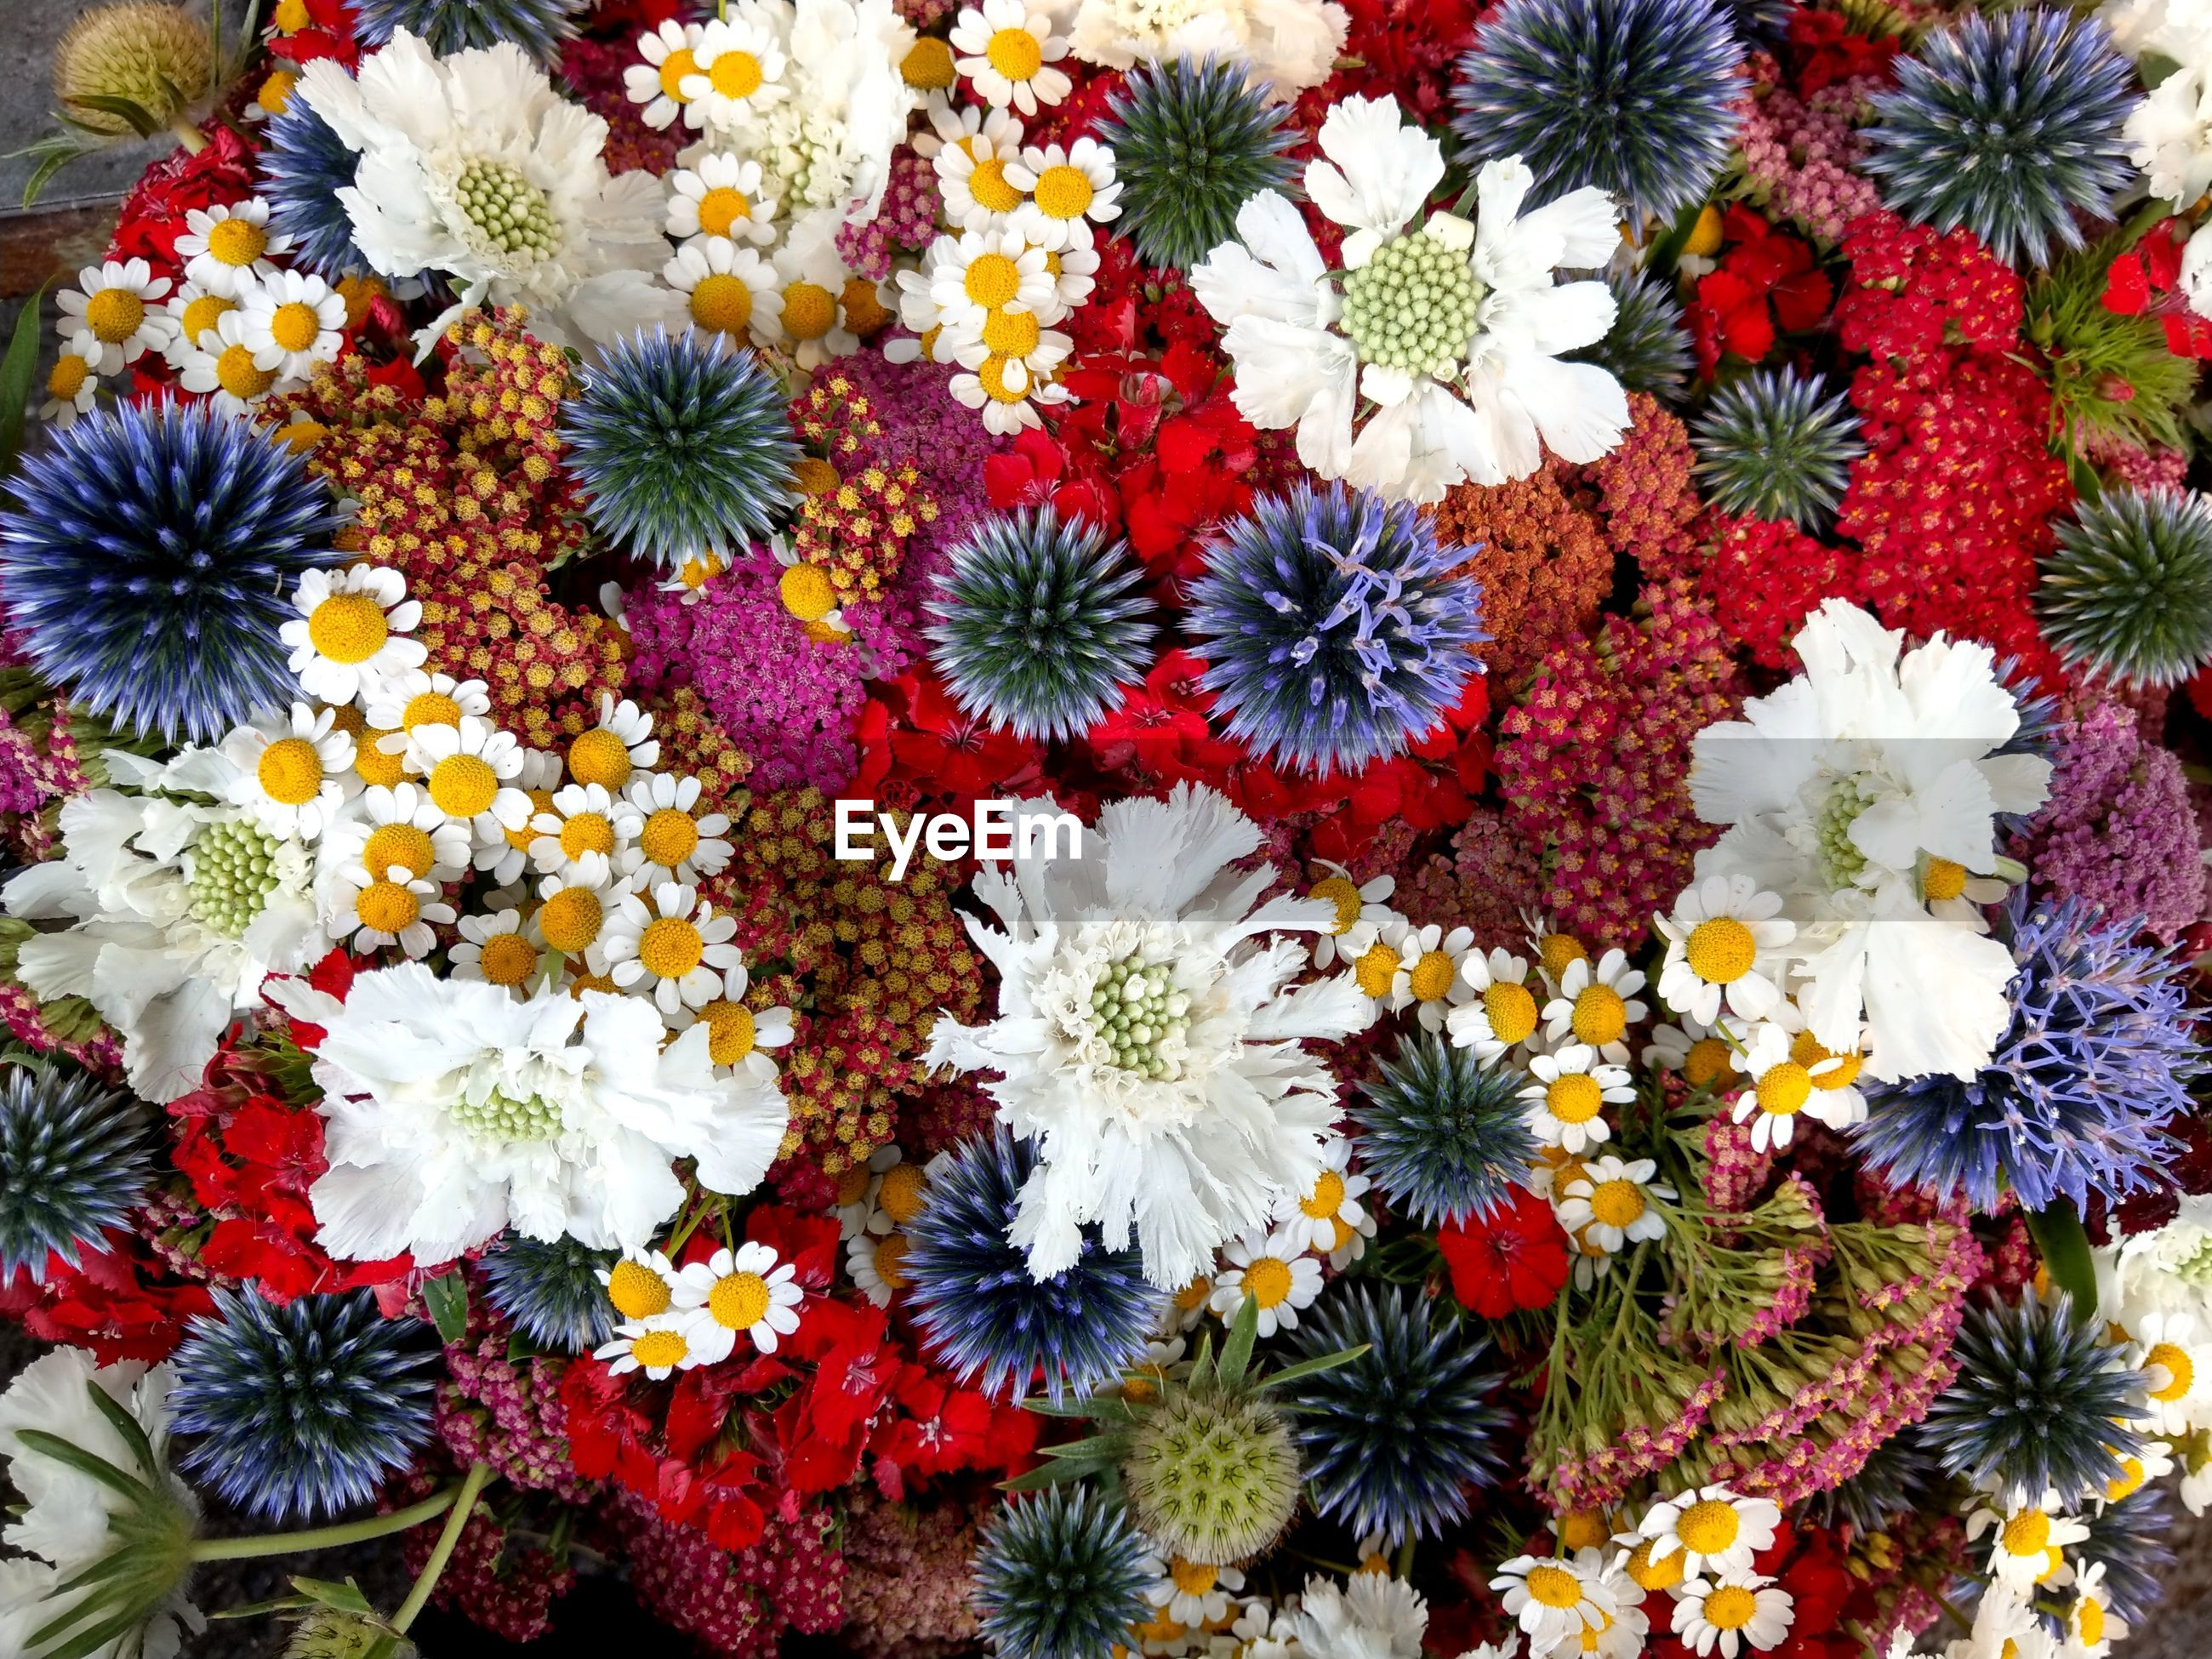 HIGH ANGLE VIEW OF MULTI COLORED DAISY FLOWERS